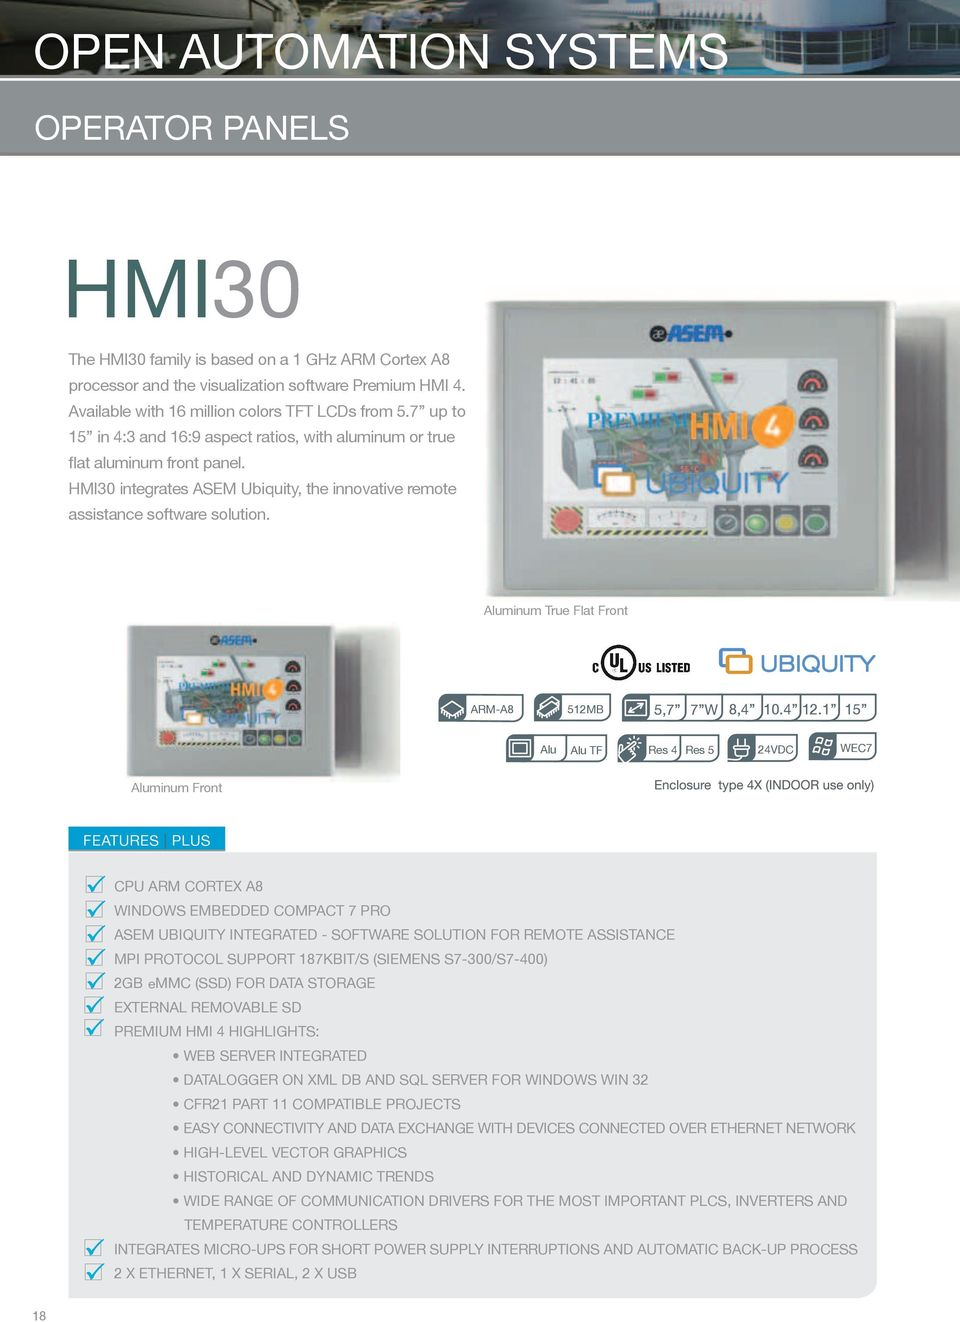 HMI30 integrates ASEM Ubiquity, the innovative remote assistance software solution. Aluminum True Flat Front ARMA8 512MB 5,7 7 W 8,4 10.4 12.